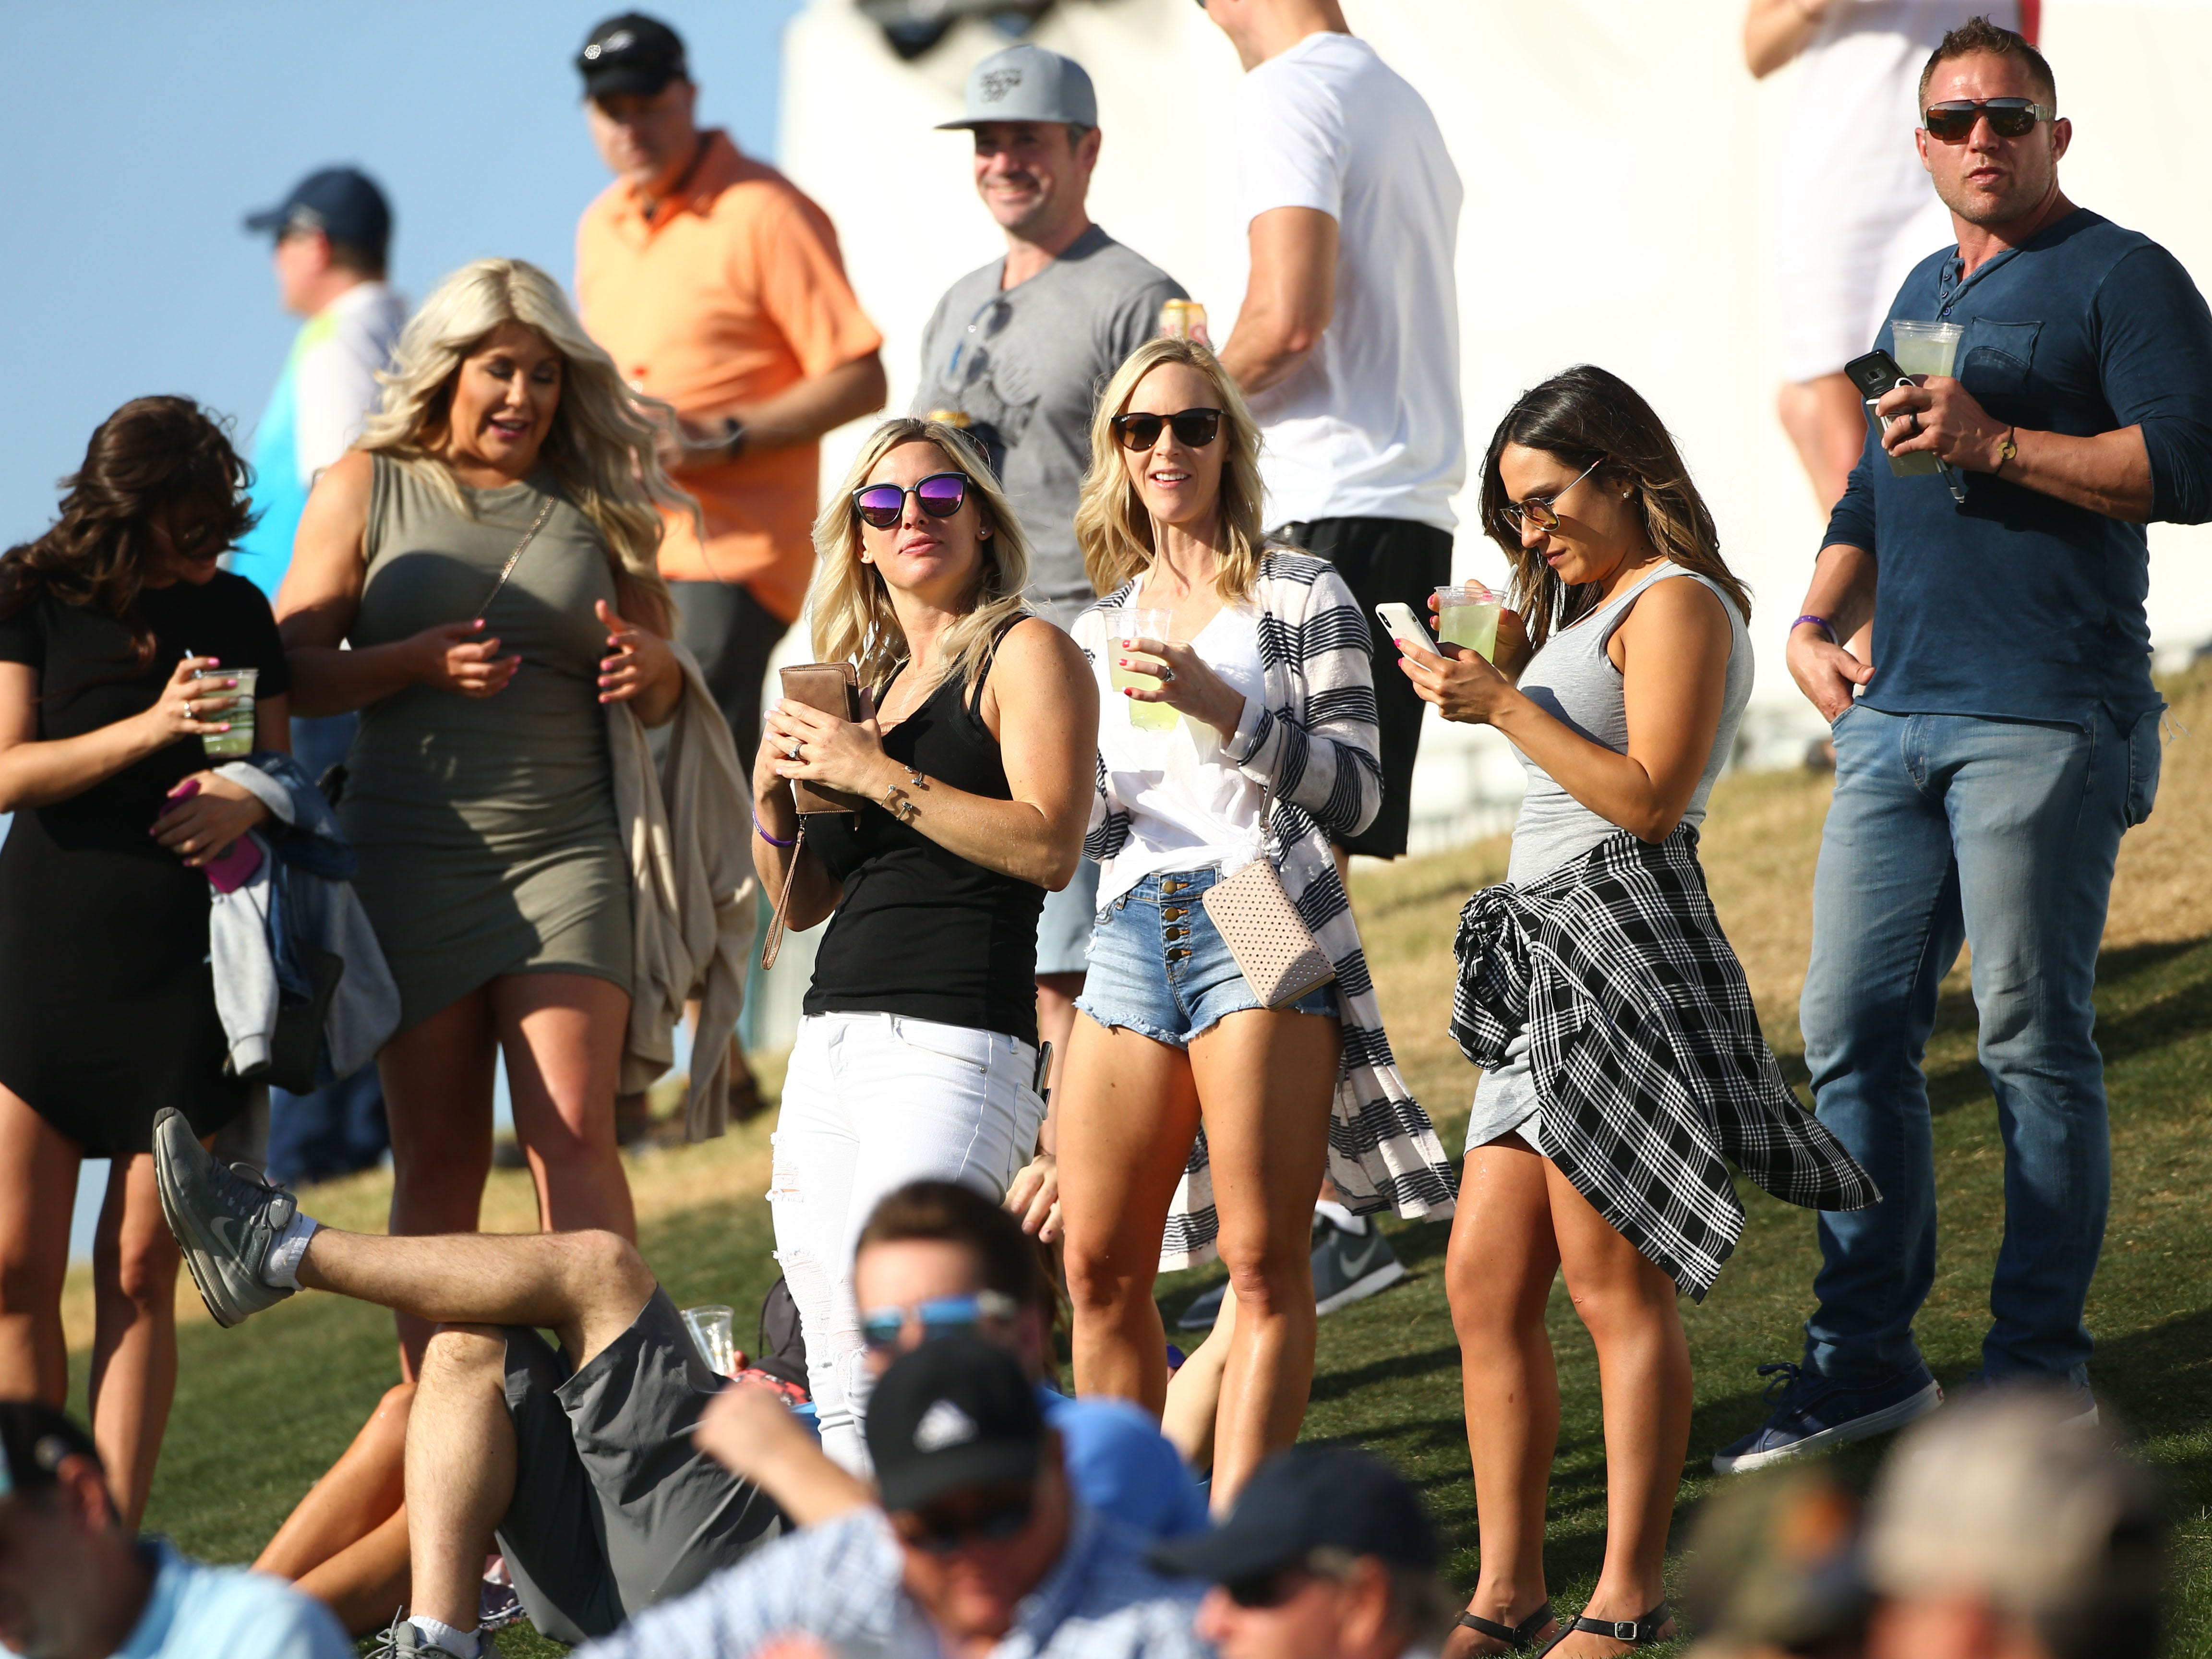 Spectators watching on the 13th hole during second round action on Feb. 1 during the Waste Management Phoenix Open at the TPC Scottsdale Stadium Course.